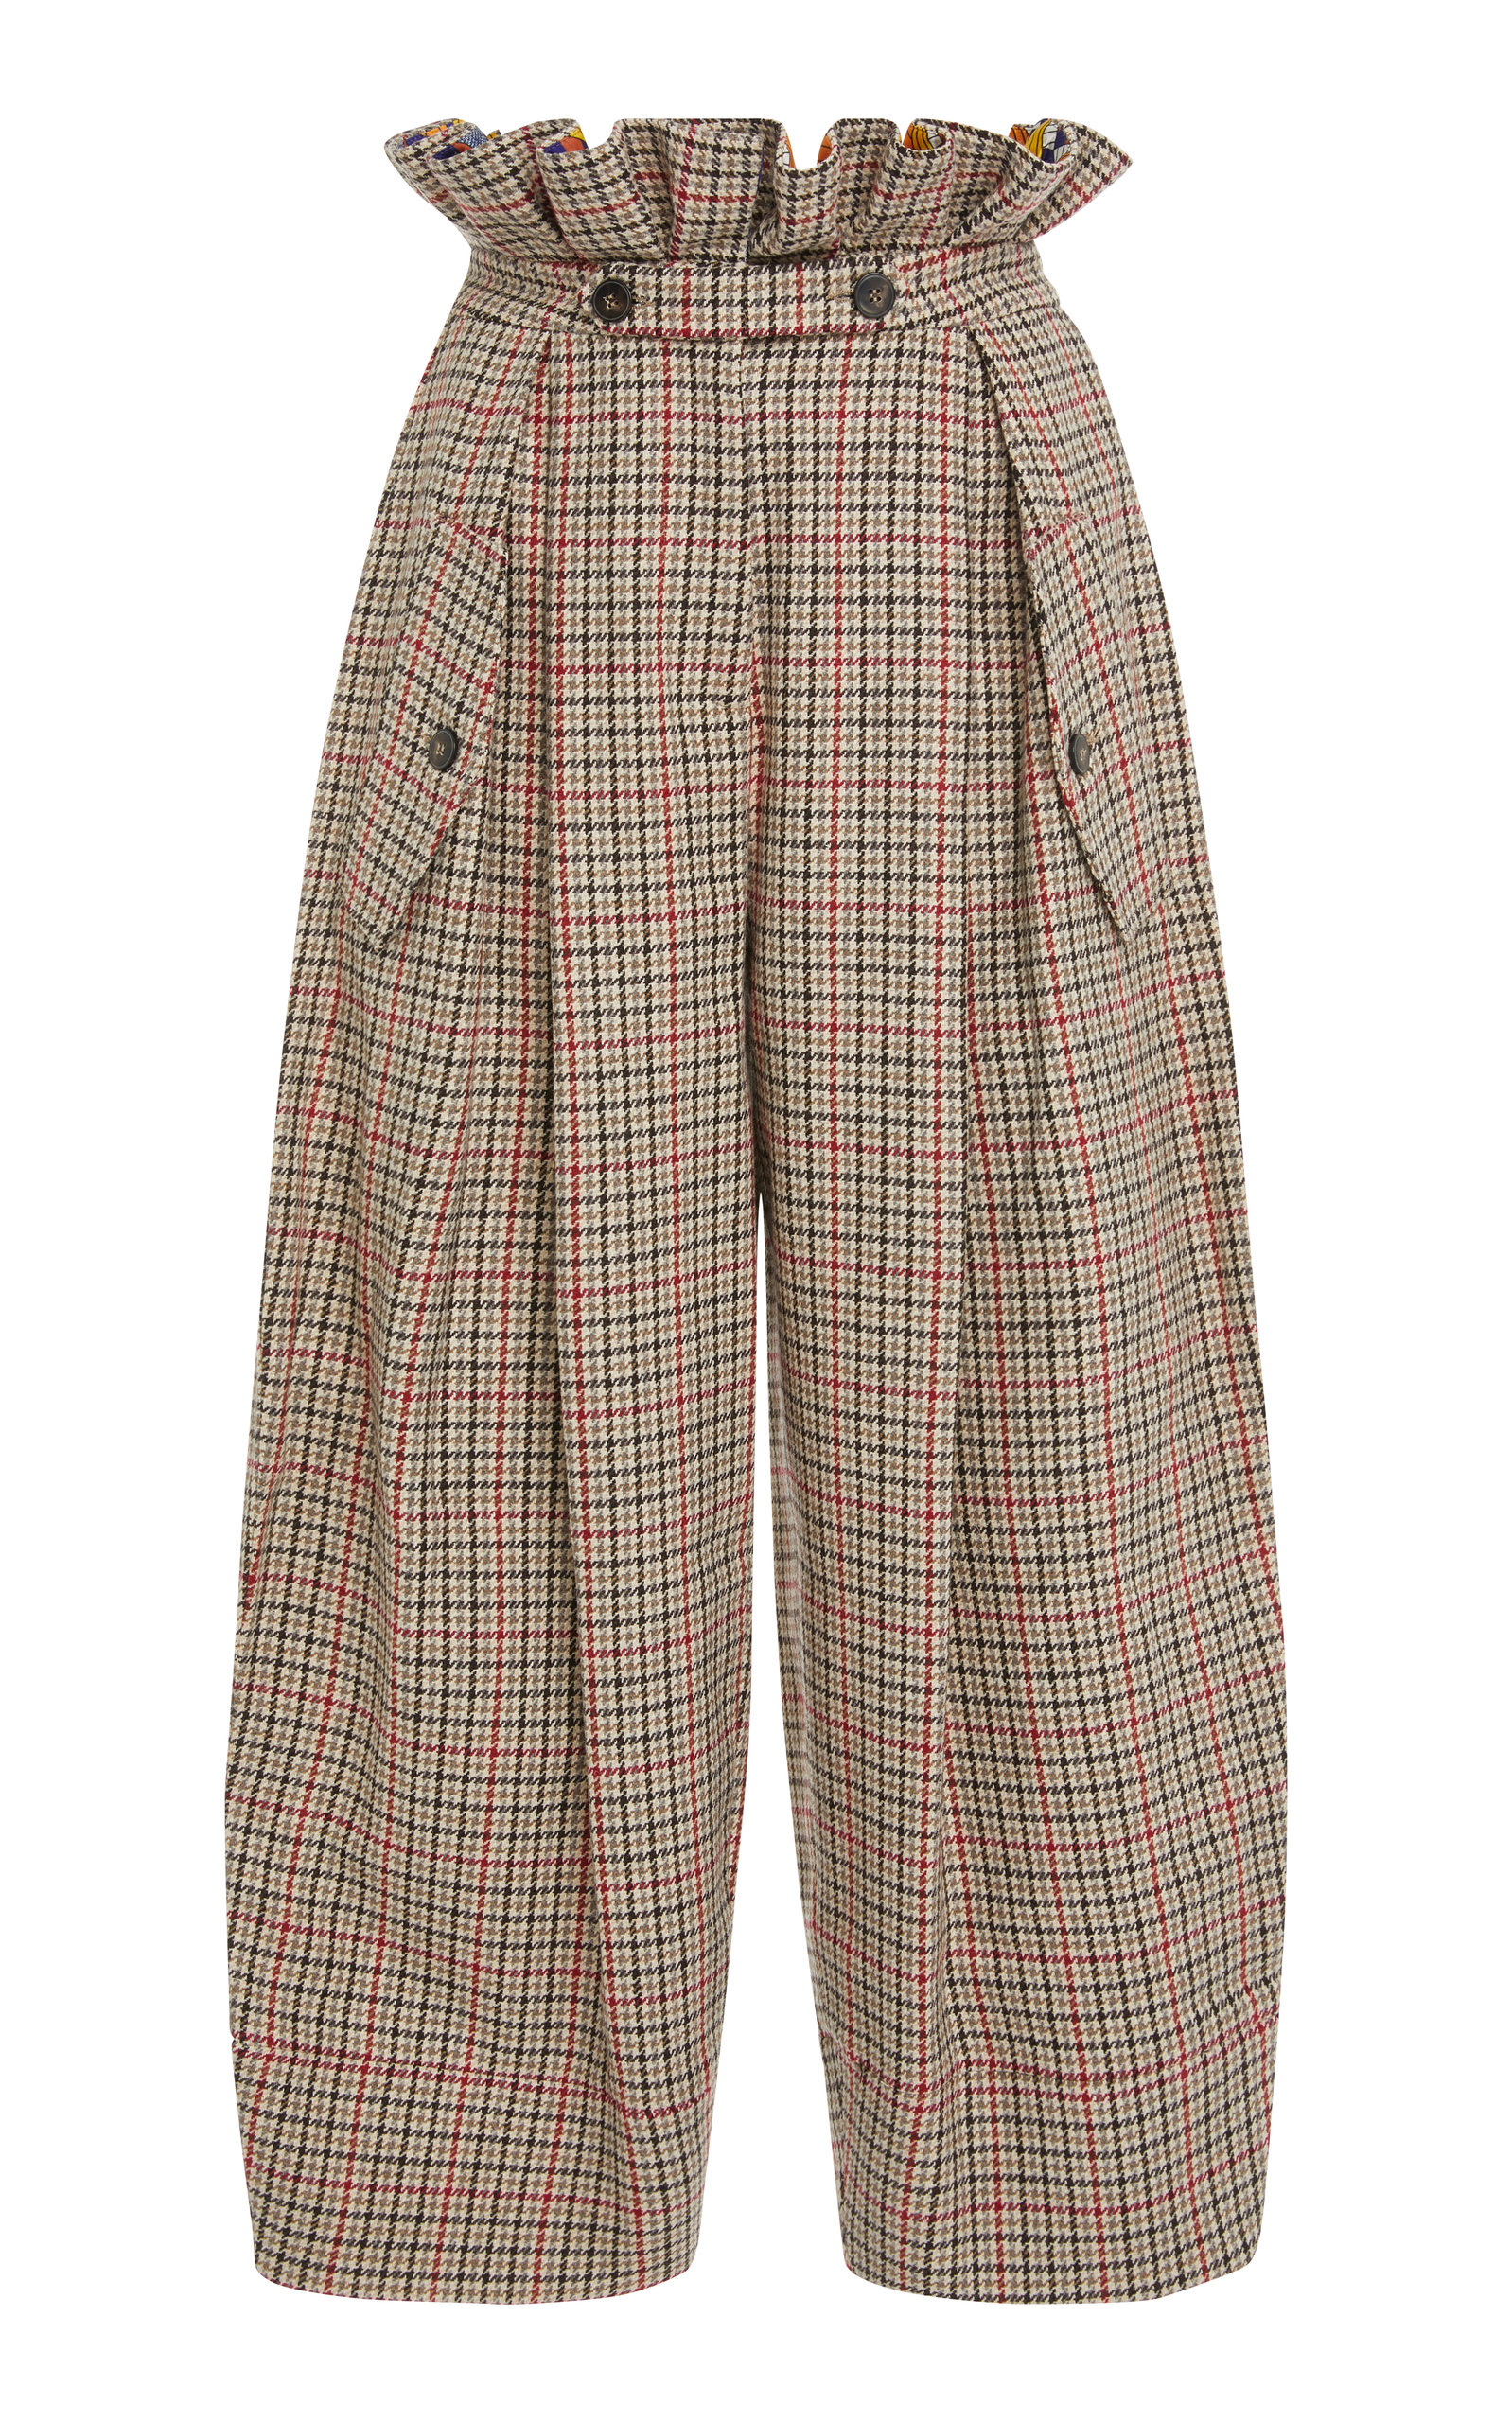 CHECKED PAPERBAG PANT